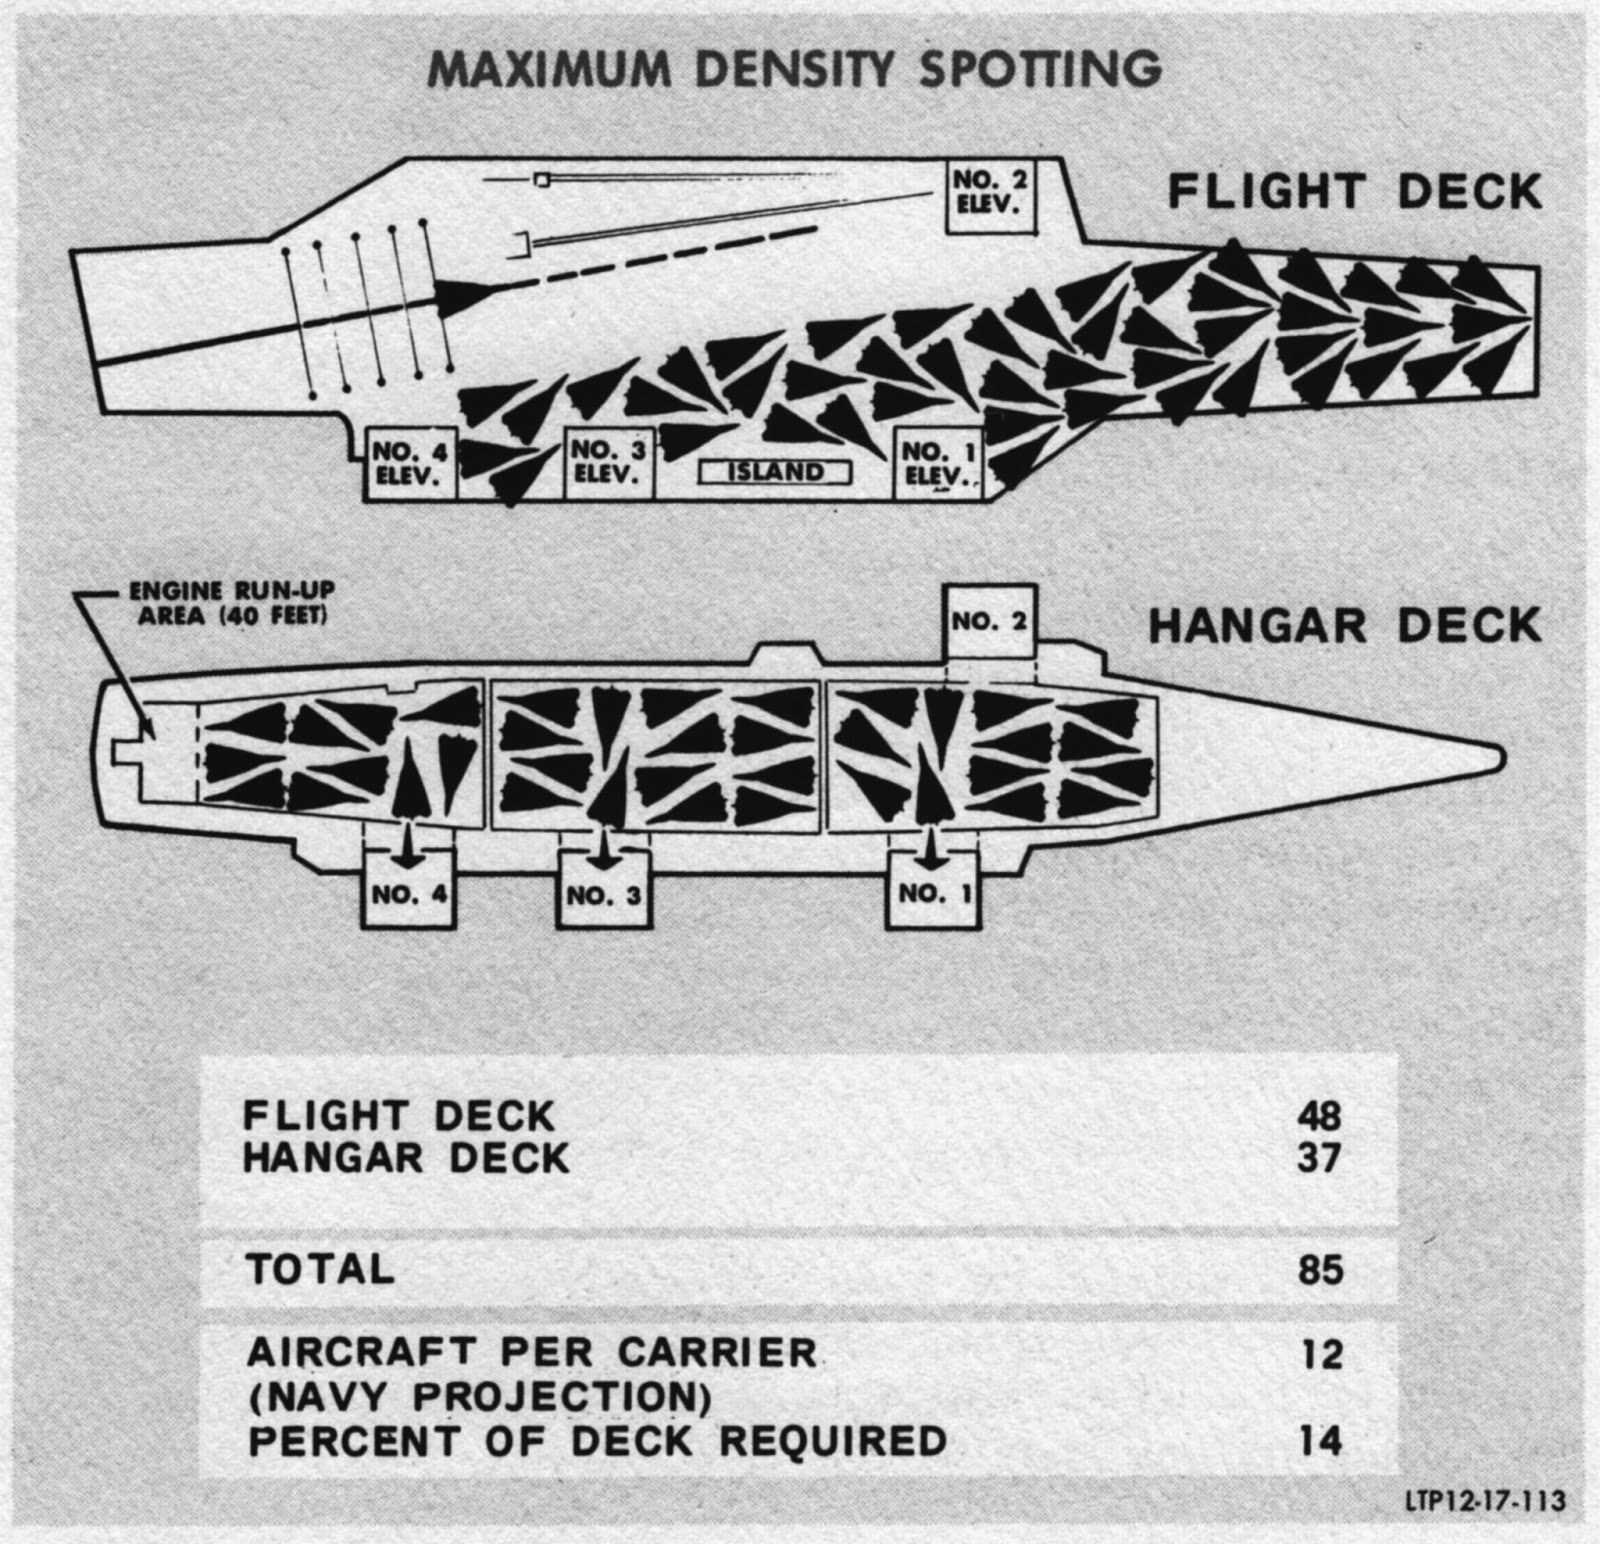 aircraft carrier flight deck diagram tail light u s navy history making the most of space available if spot factor fighter was 1 3 80 reference attack airplanes filled on in question